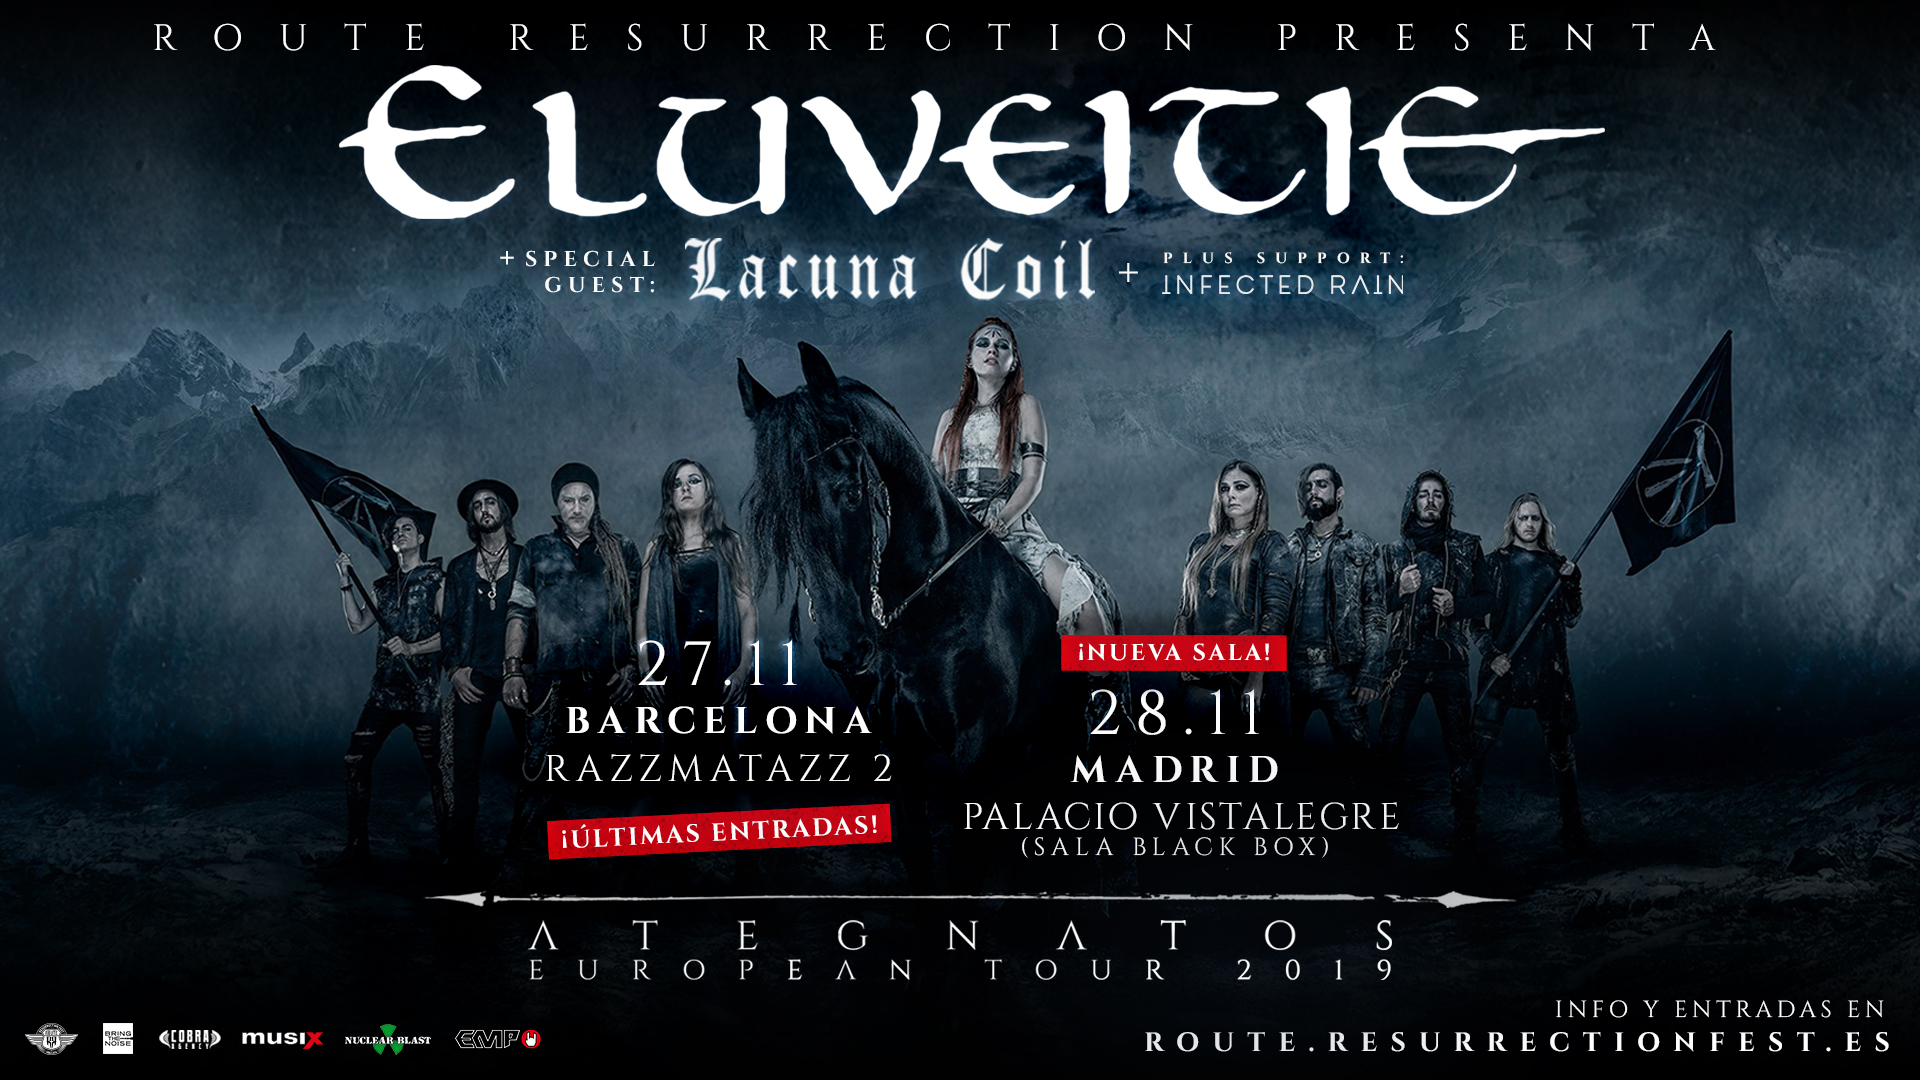 Route Resurrection Fest 2019 - Eluveitie - Lacuna Coil - Event